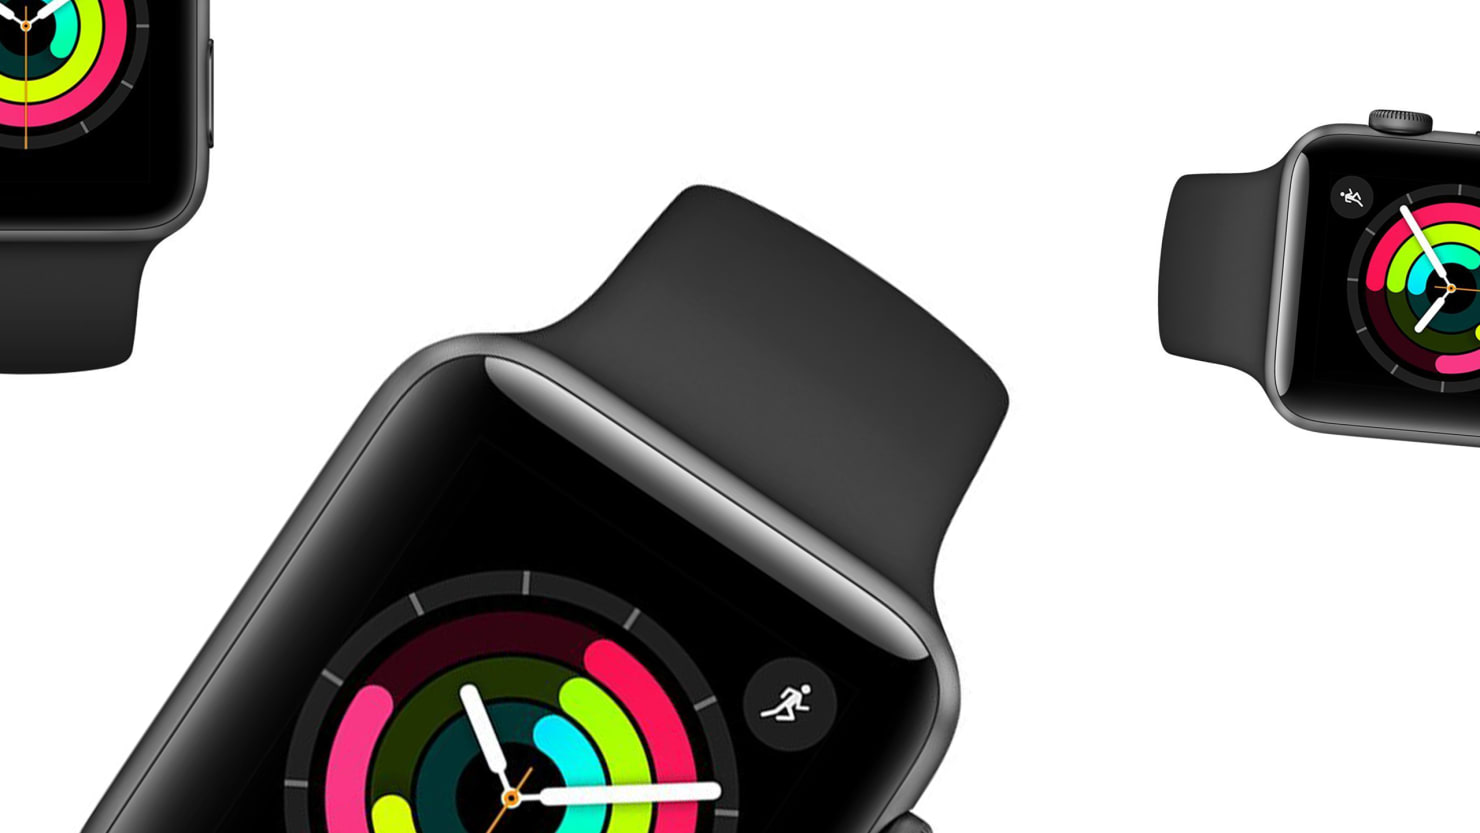 Get $55 Off the Apple Watch Series 3 Water Resistant And GPS-Enabled Smartwatch